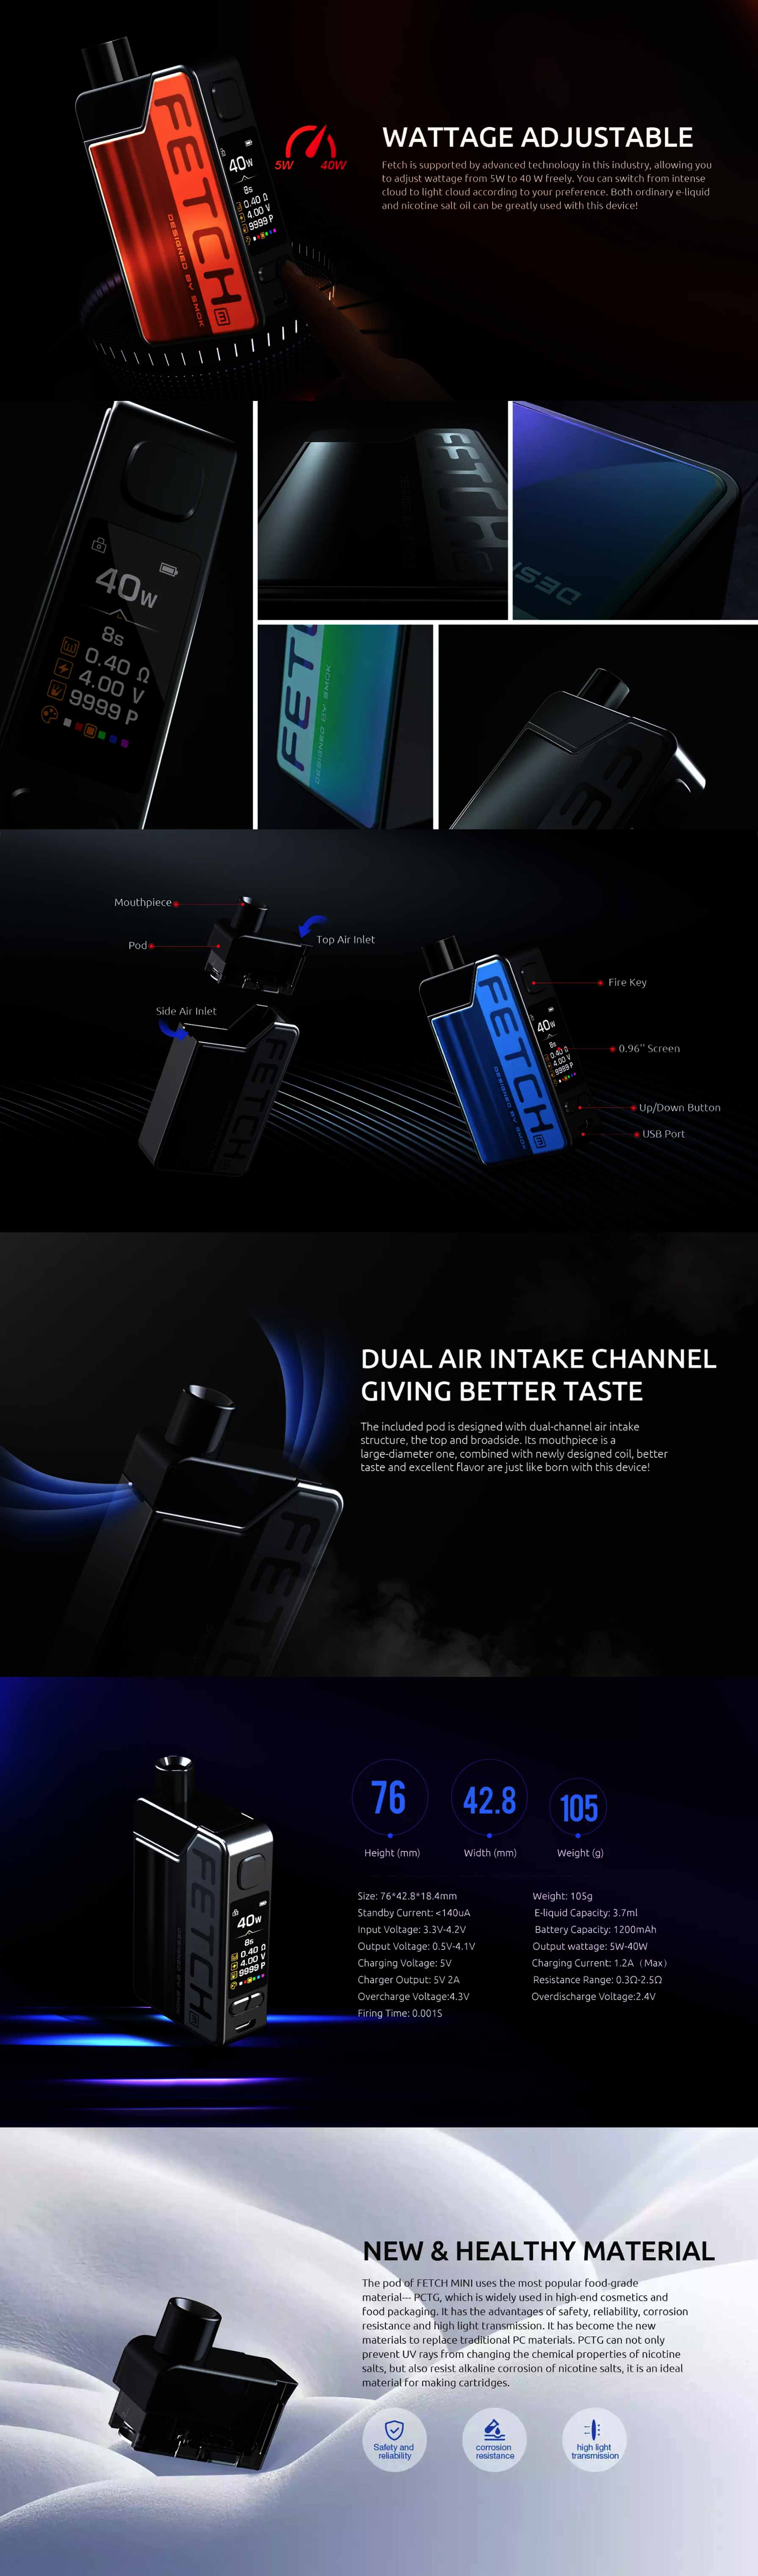 Smok Fetch Mini Kit características